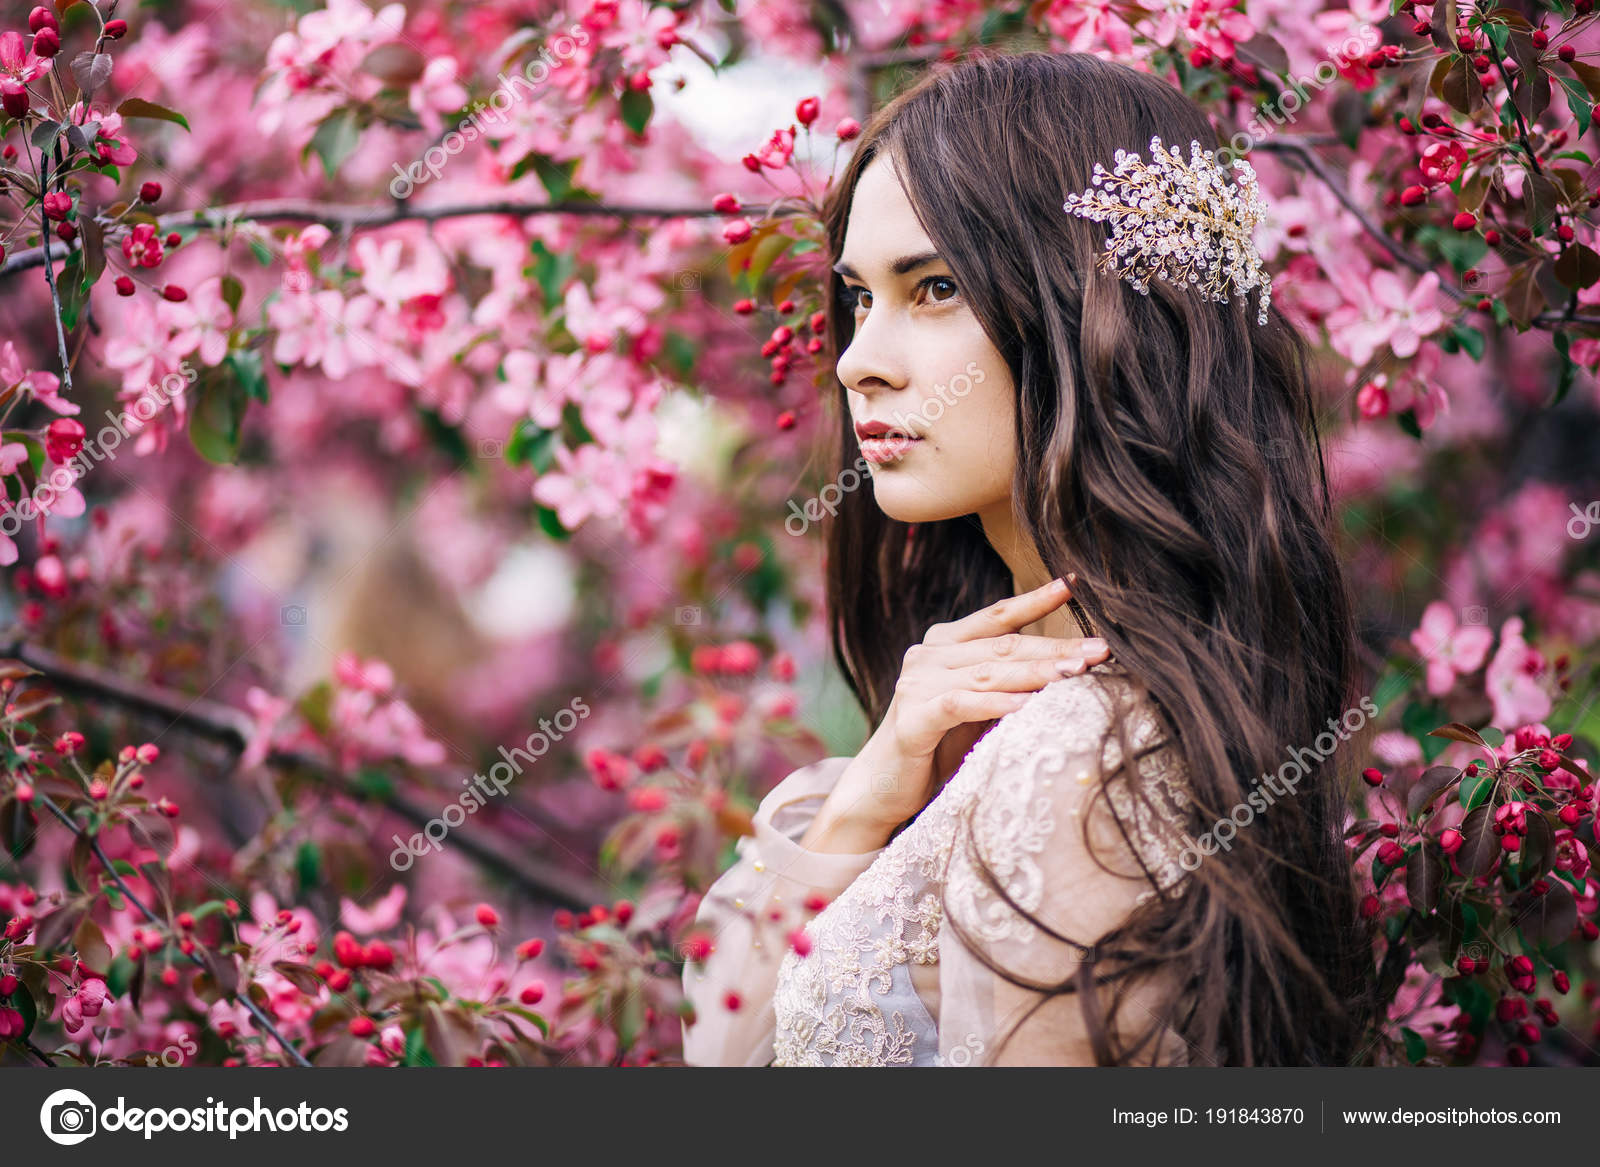 Beautiful cute brunette girl bride in boudoir lace transparent dress with decoration on the hair near the tree blossoms with pink flowers profile